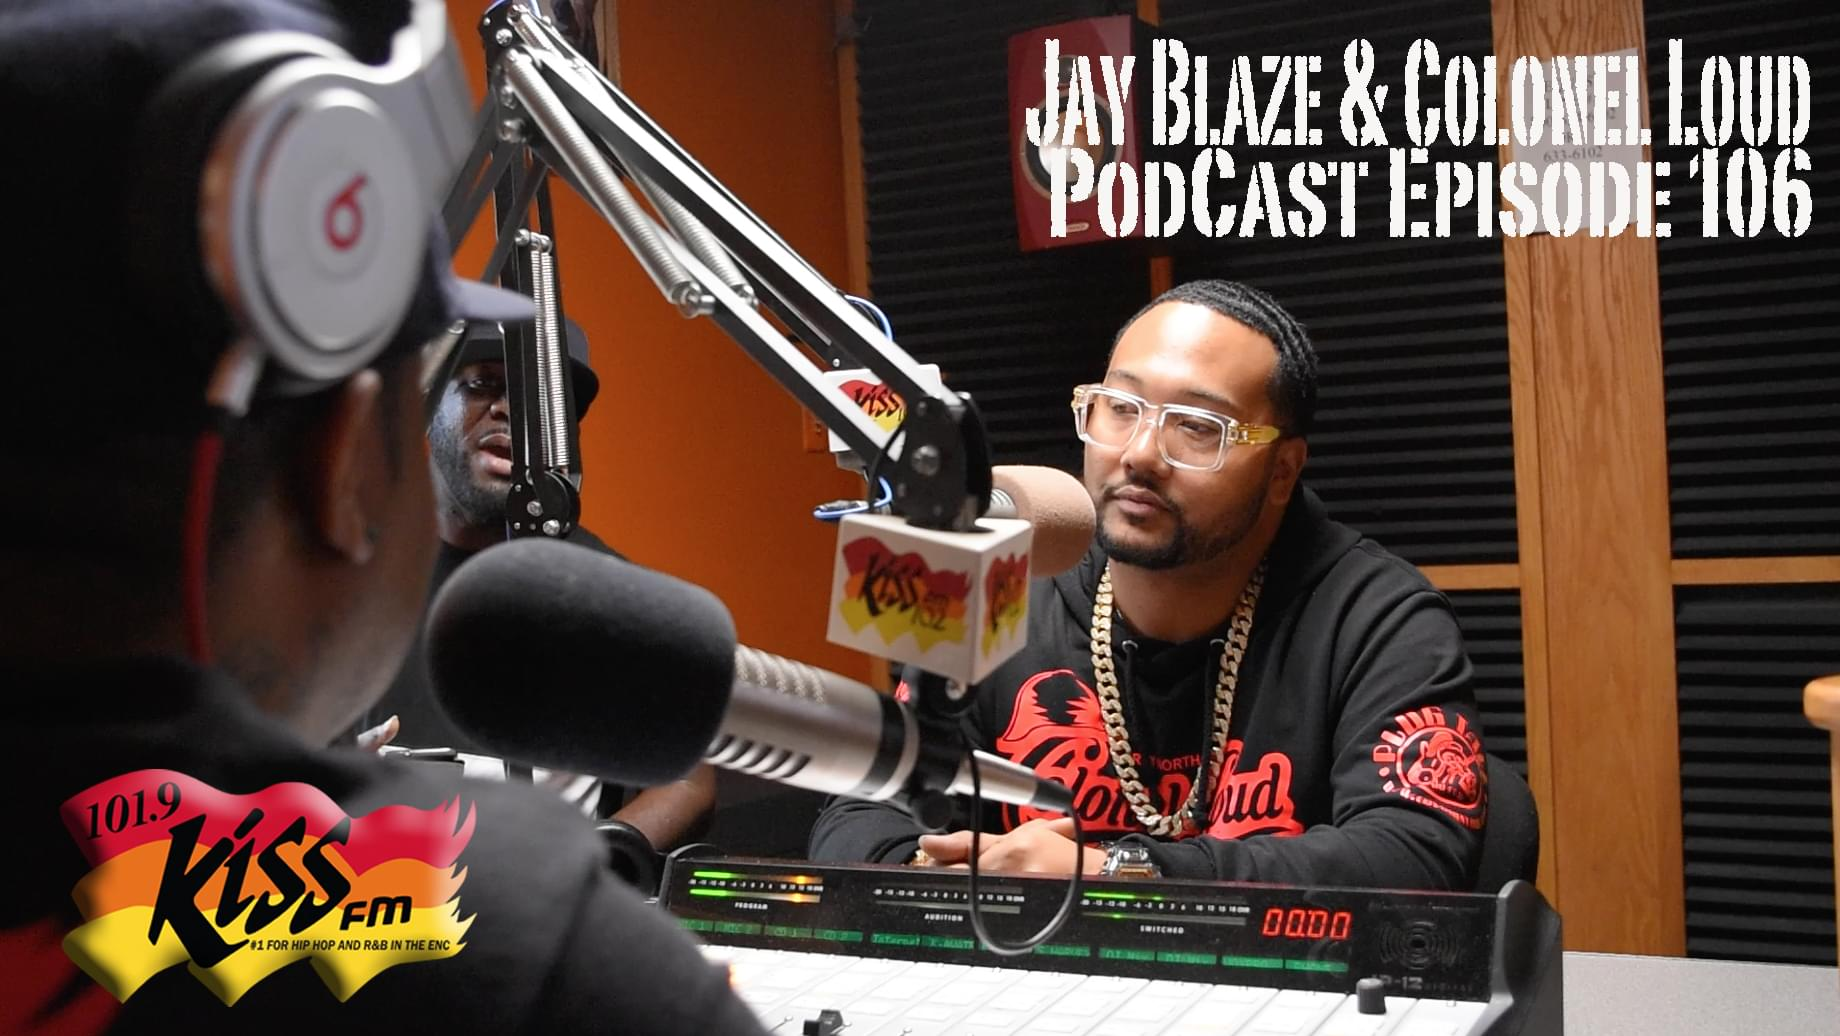 """Colonel Loud And Jay Blaze PodCast Episode 106 """"New Old School Music"""""""